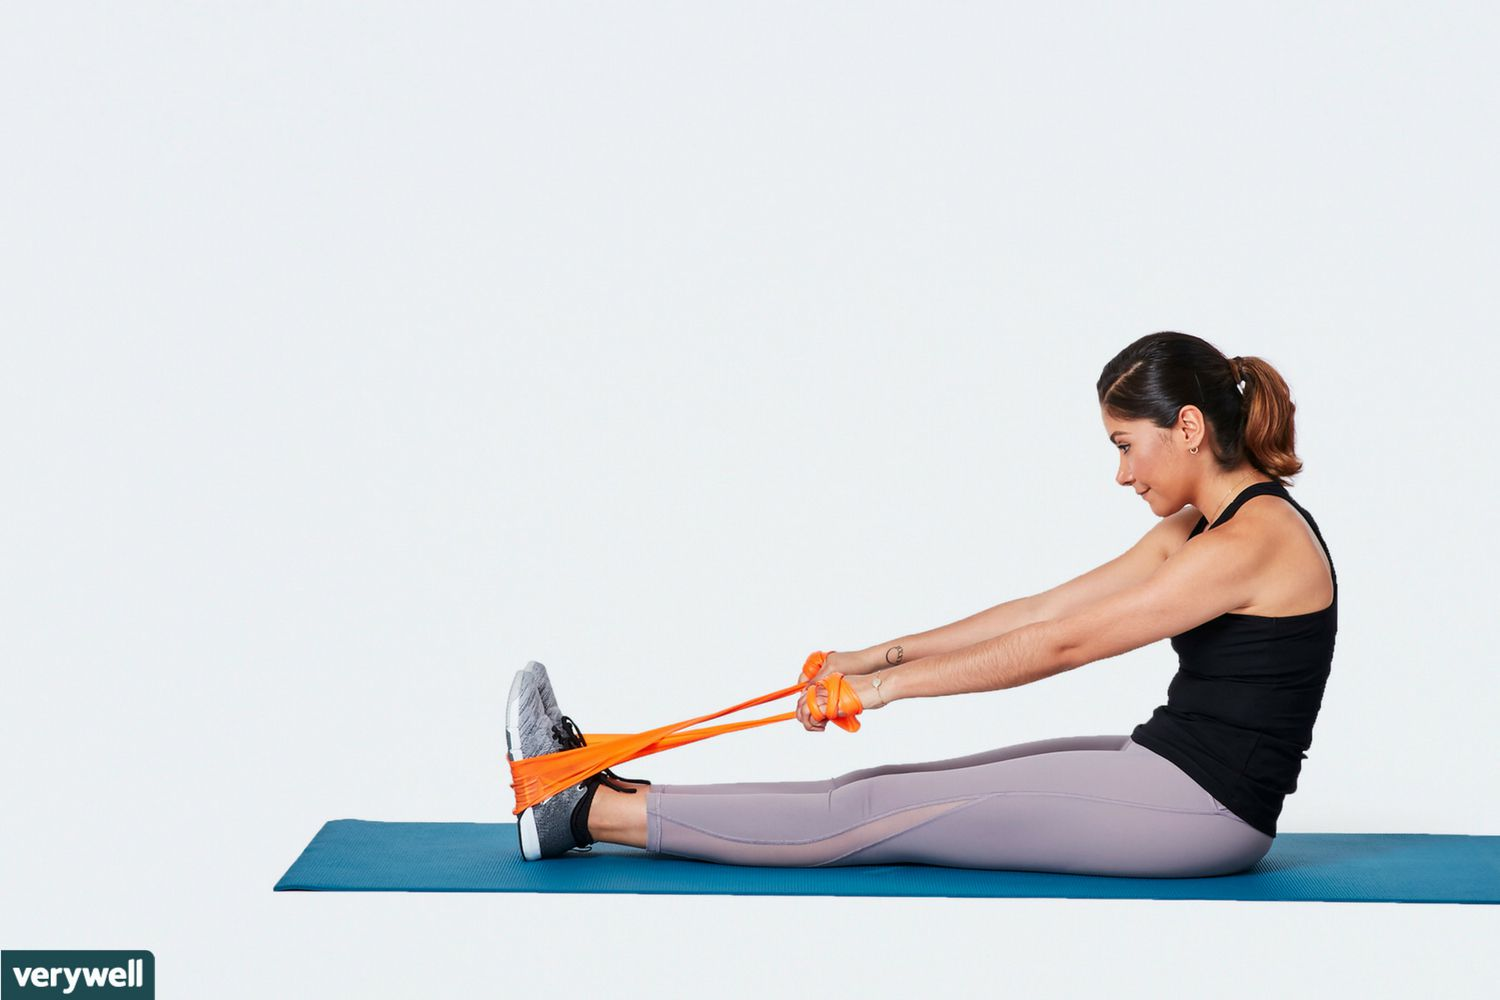 Total Body Stretching Routine With Resistance Bands Gym Ankle Strap Woman Doing Seated Upper Back Stretch